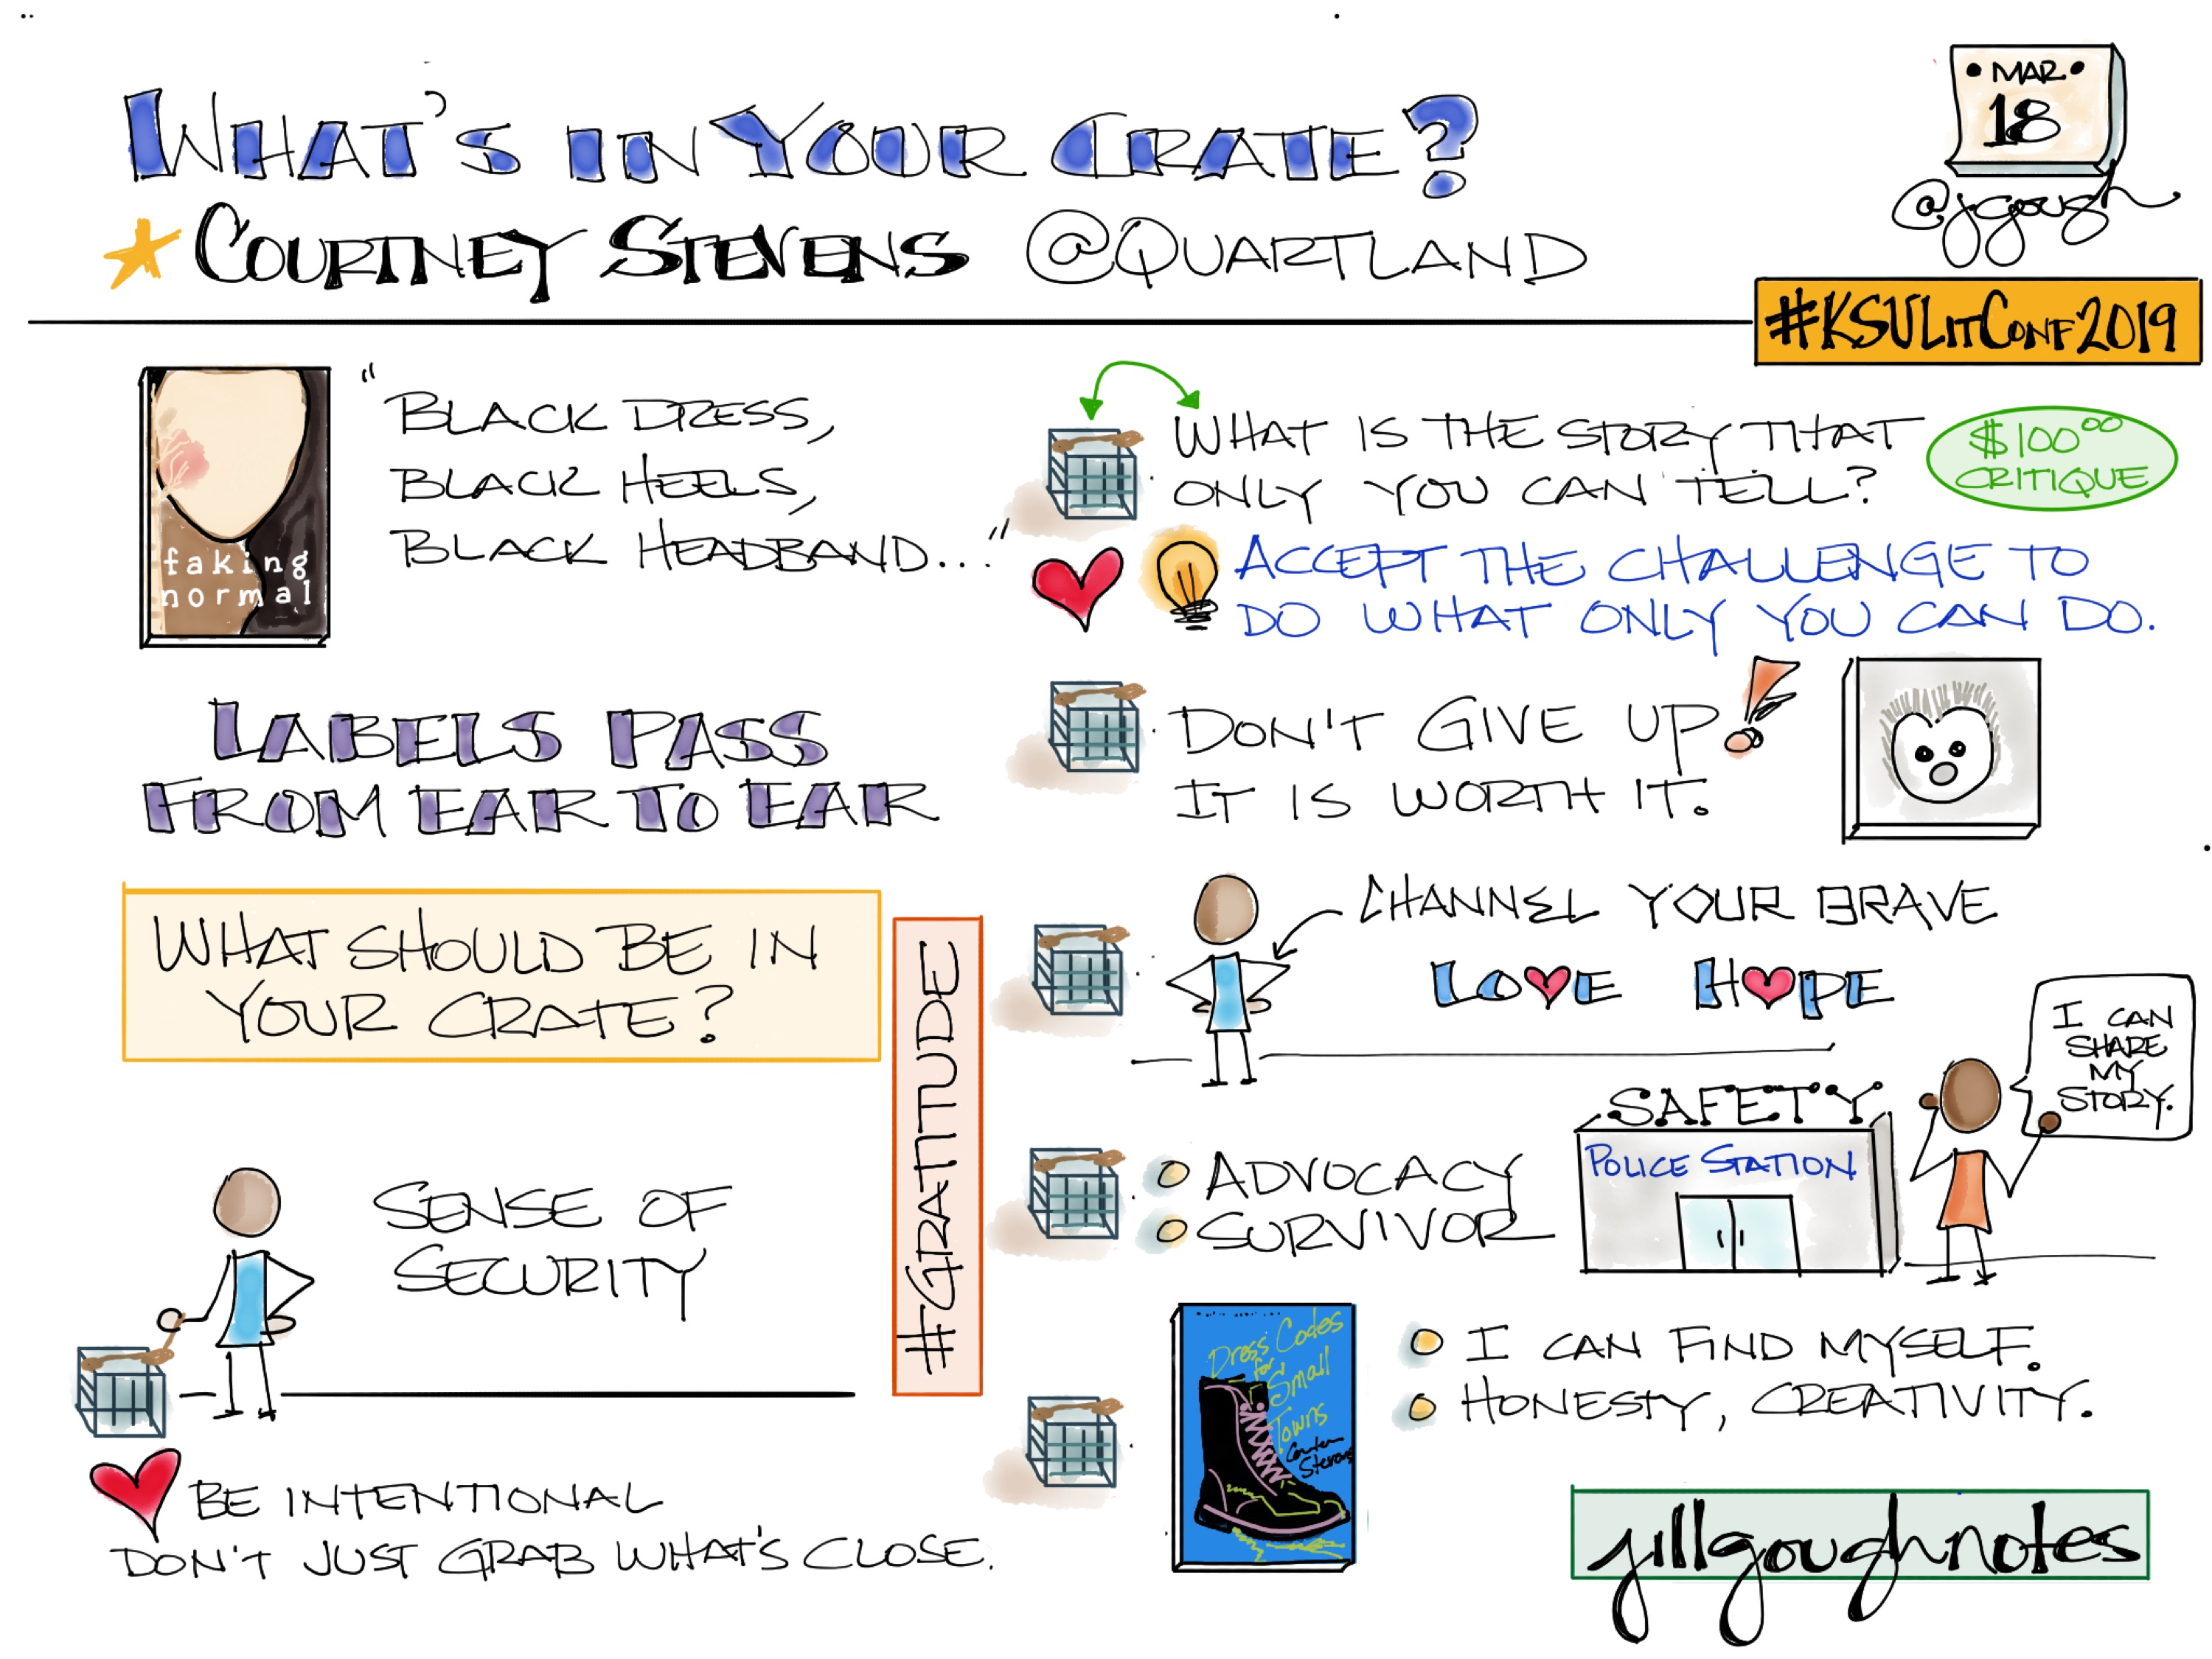 Sharing my #Sketchnotes from @Quartland 's #KSULitConf2019 keynote What's in Your Crate?